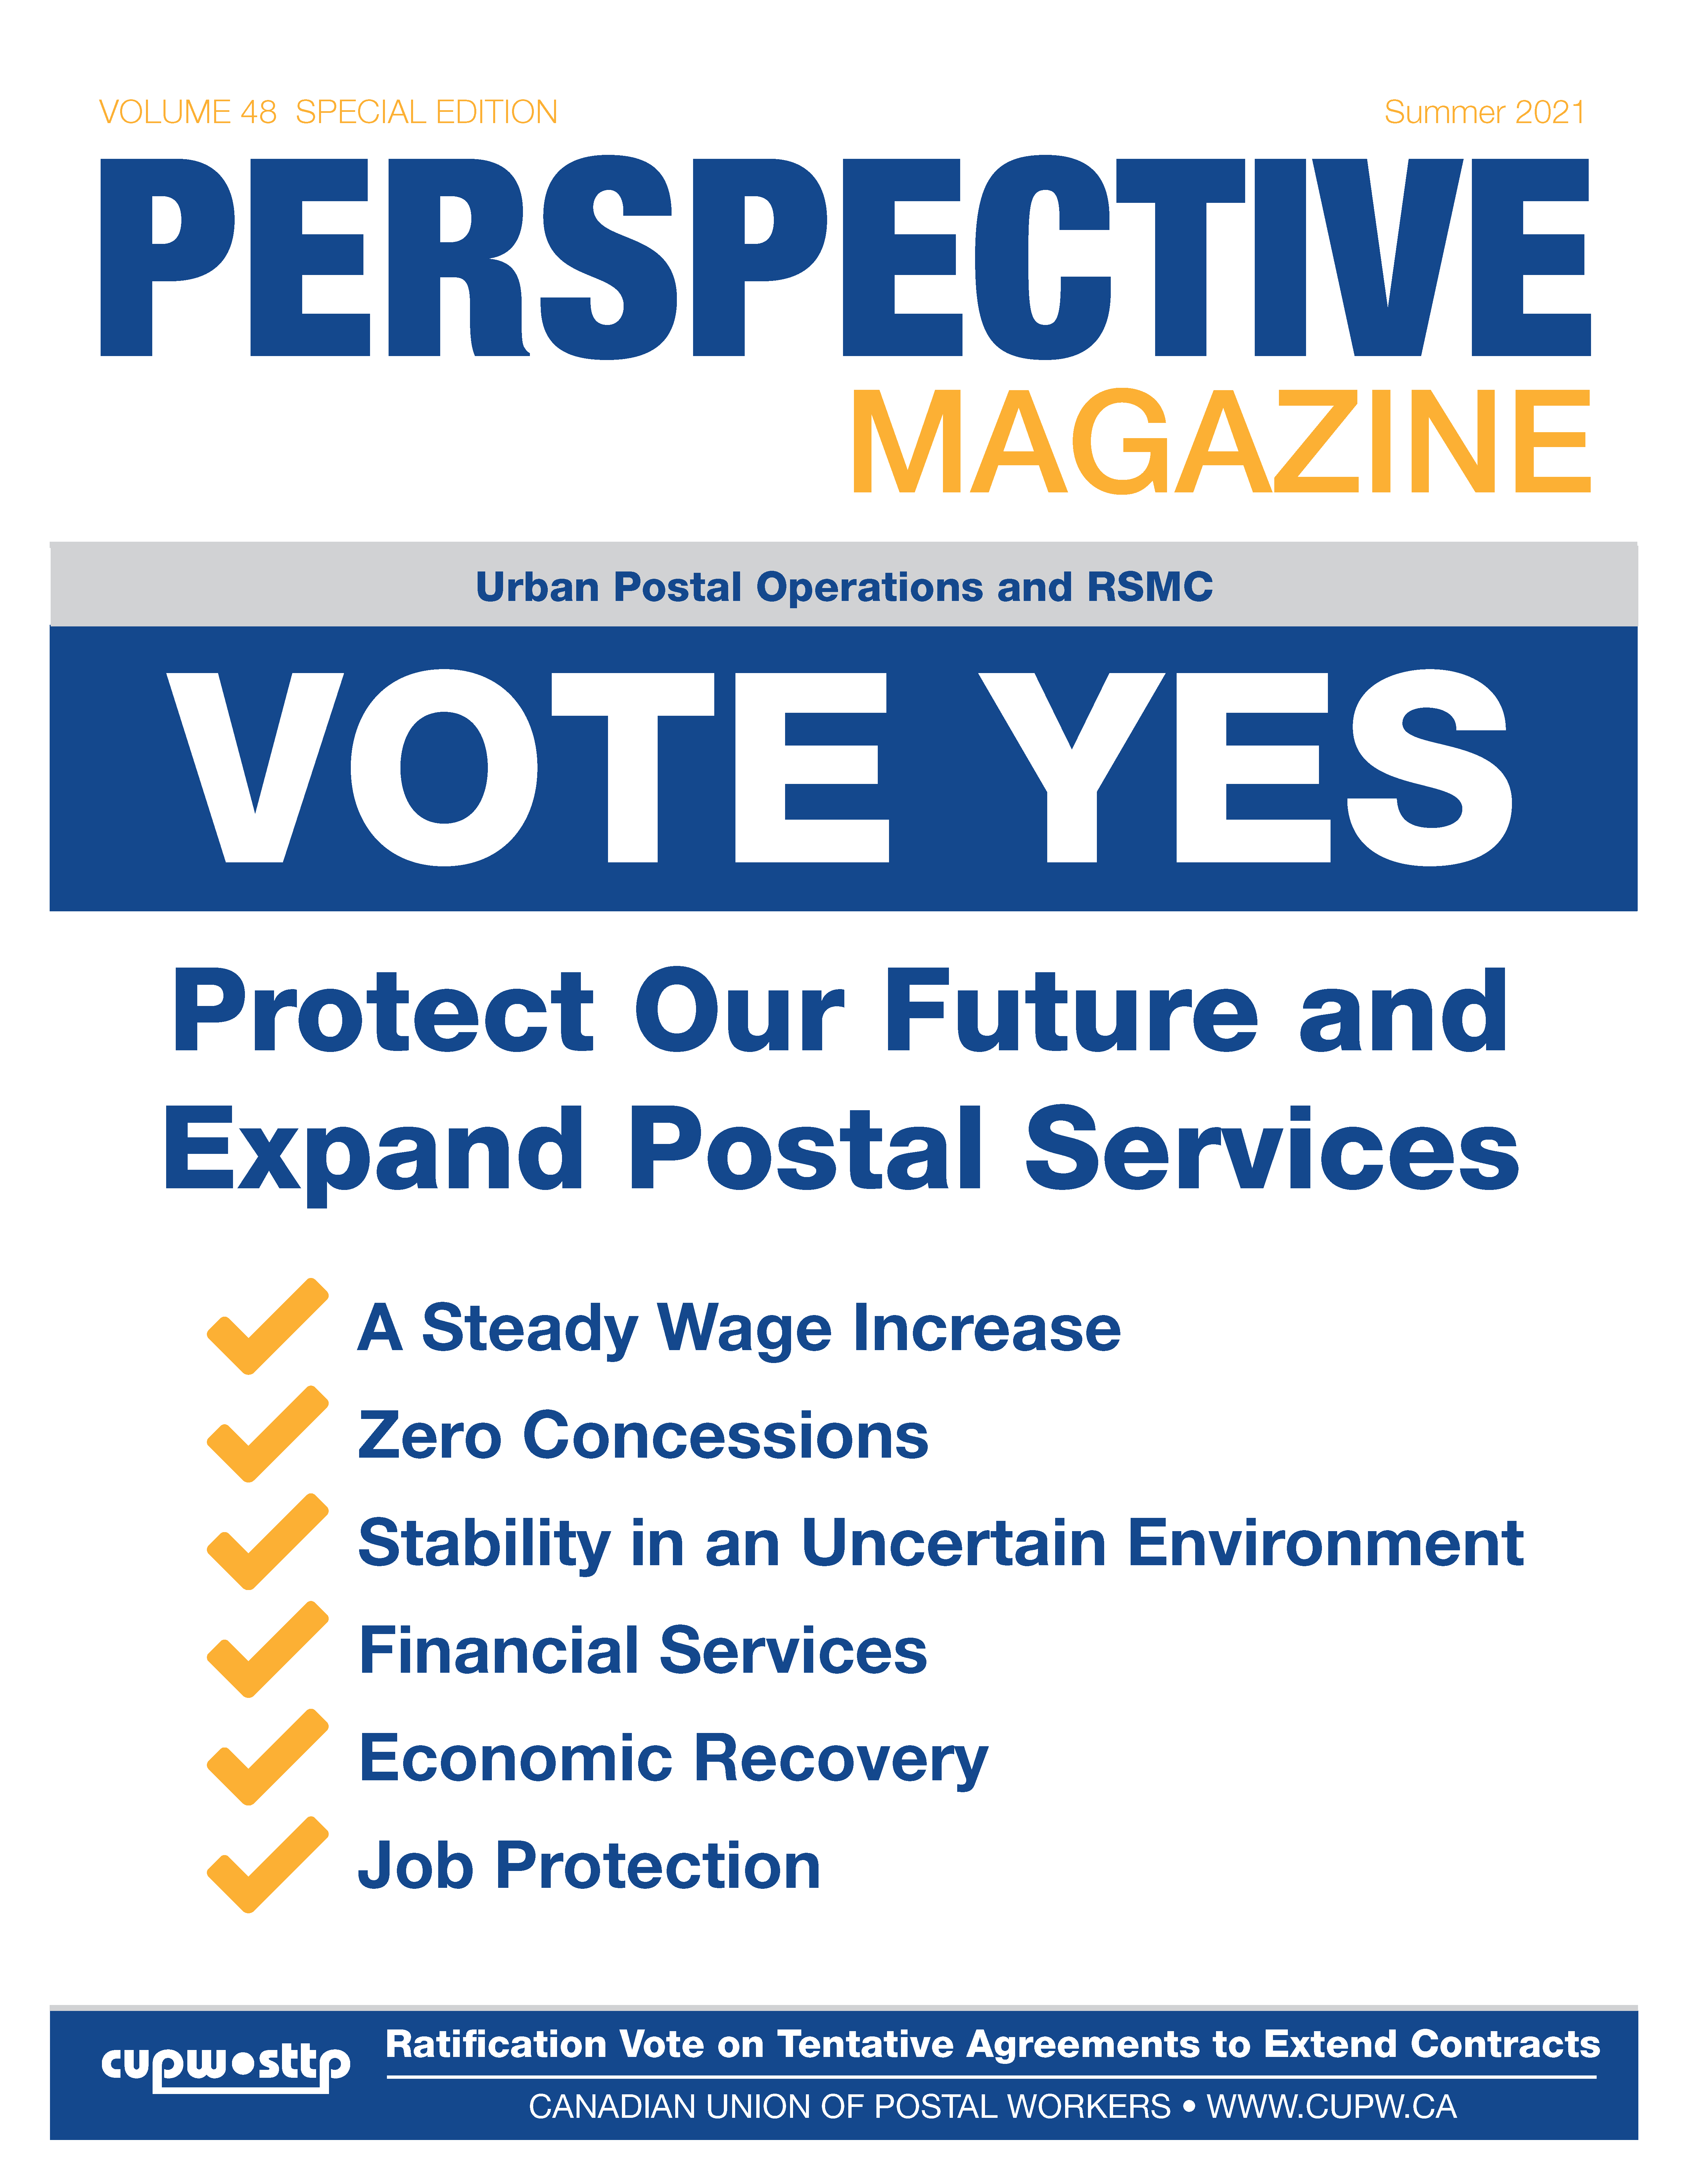 Ratification Tabloid: Vote YES to Protect Our Future and Expand Postal Services